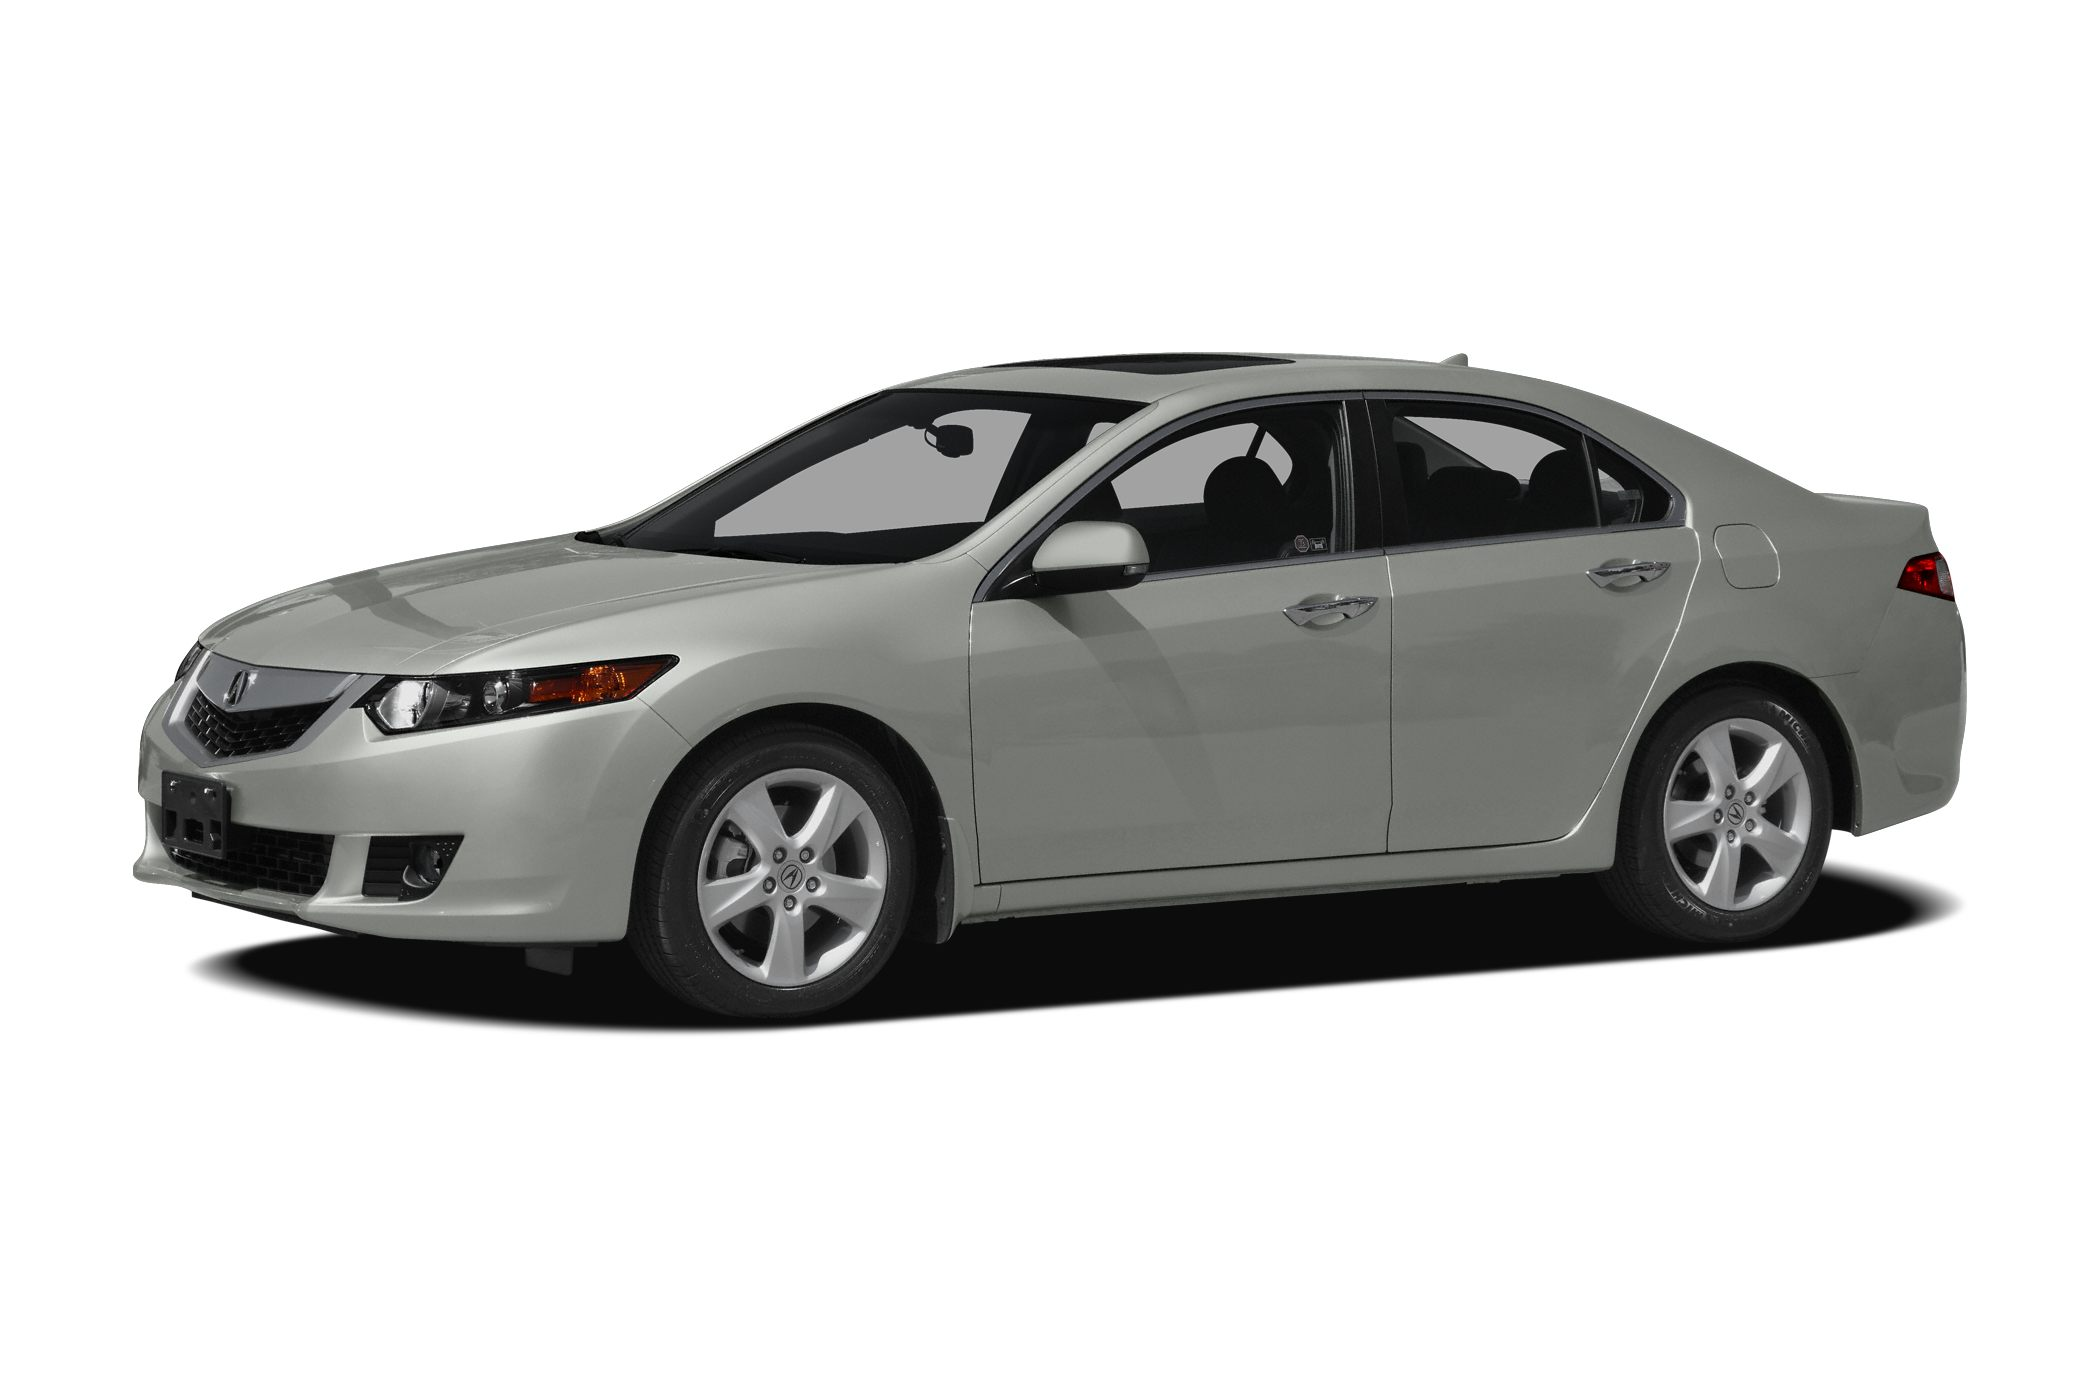 2010 Acura TSX 2 4 4dr Sedan Specs and Prices